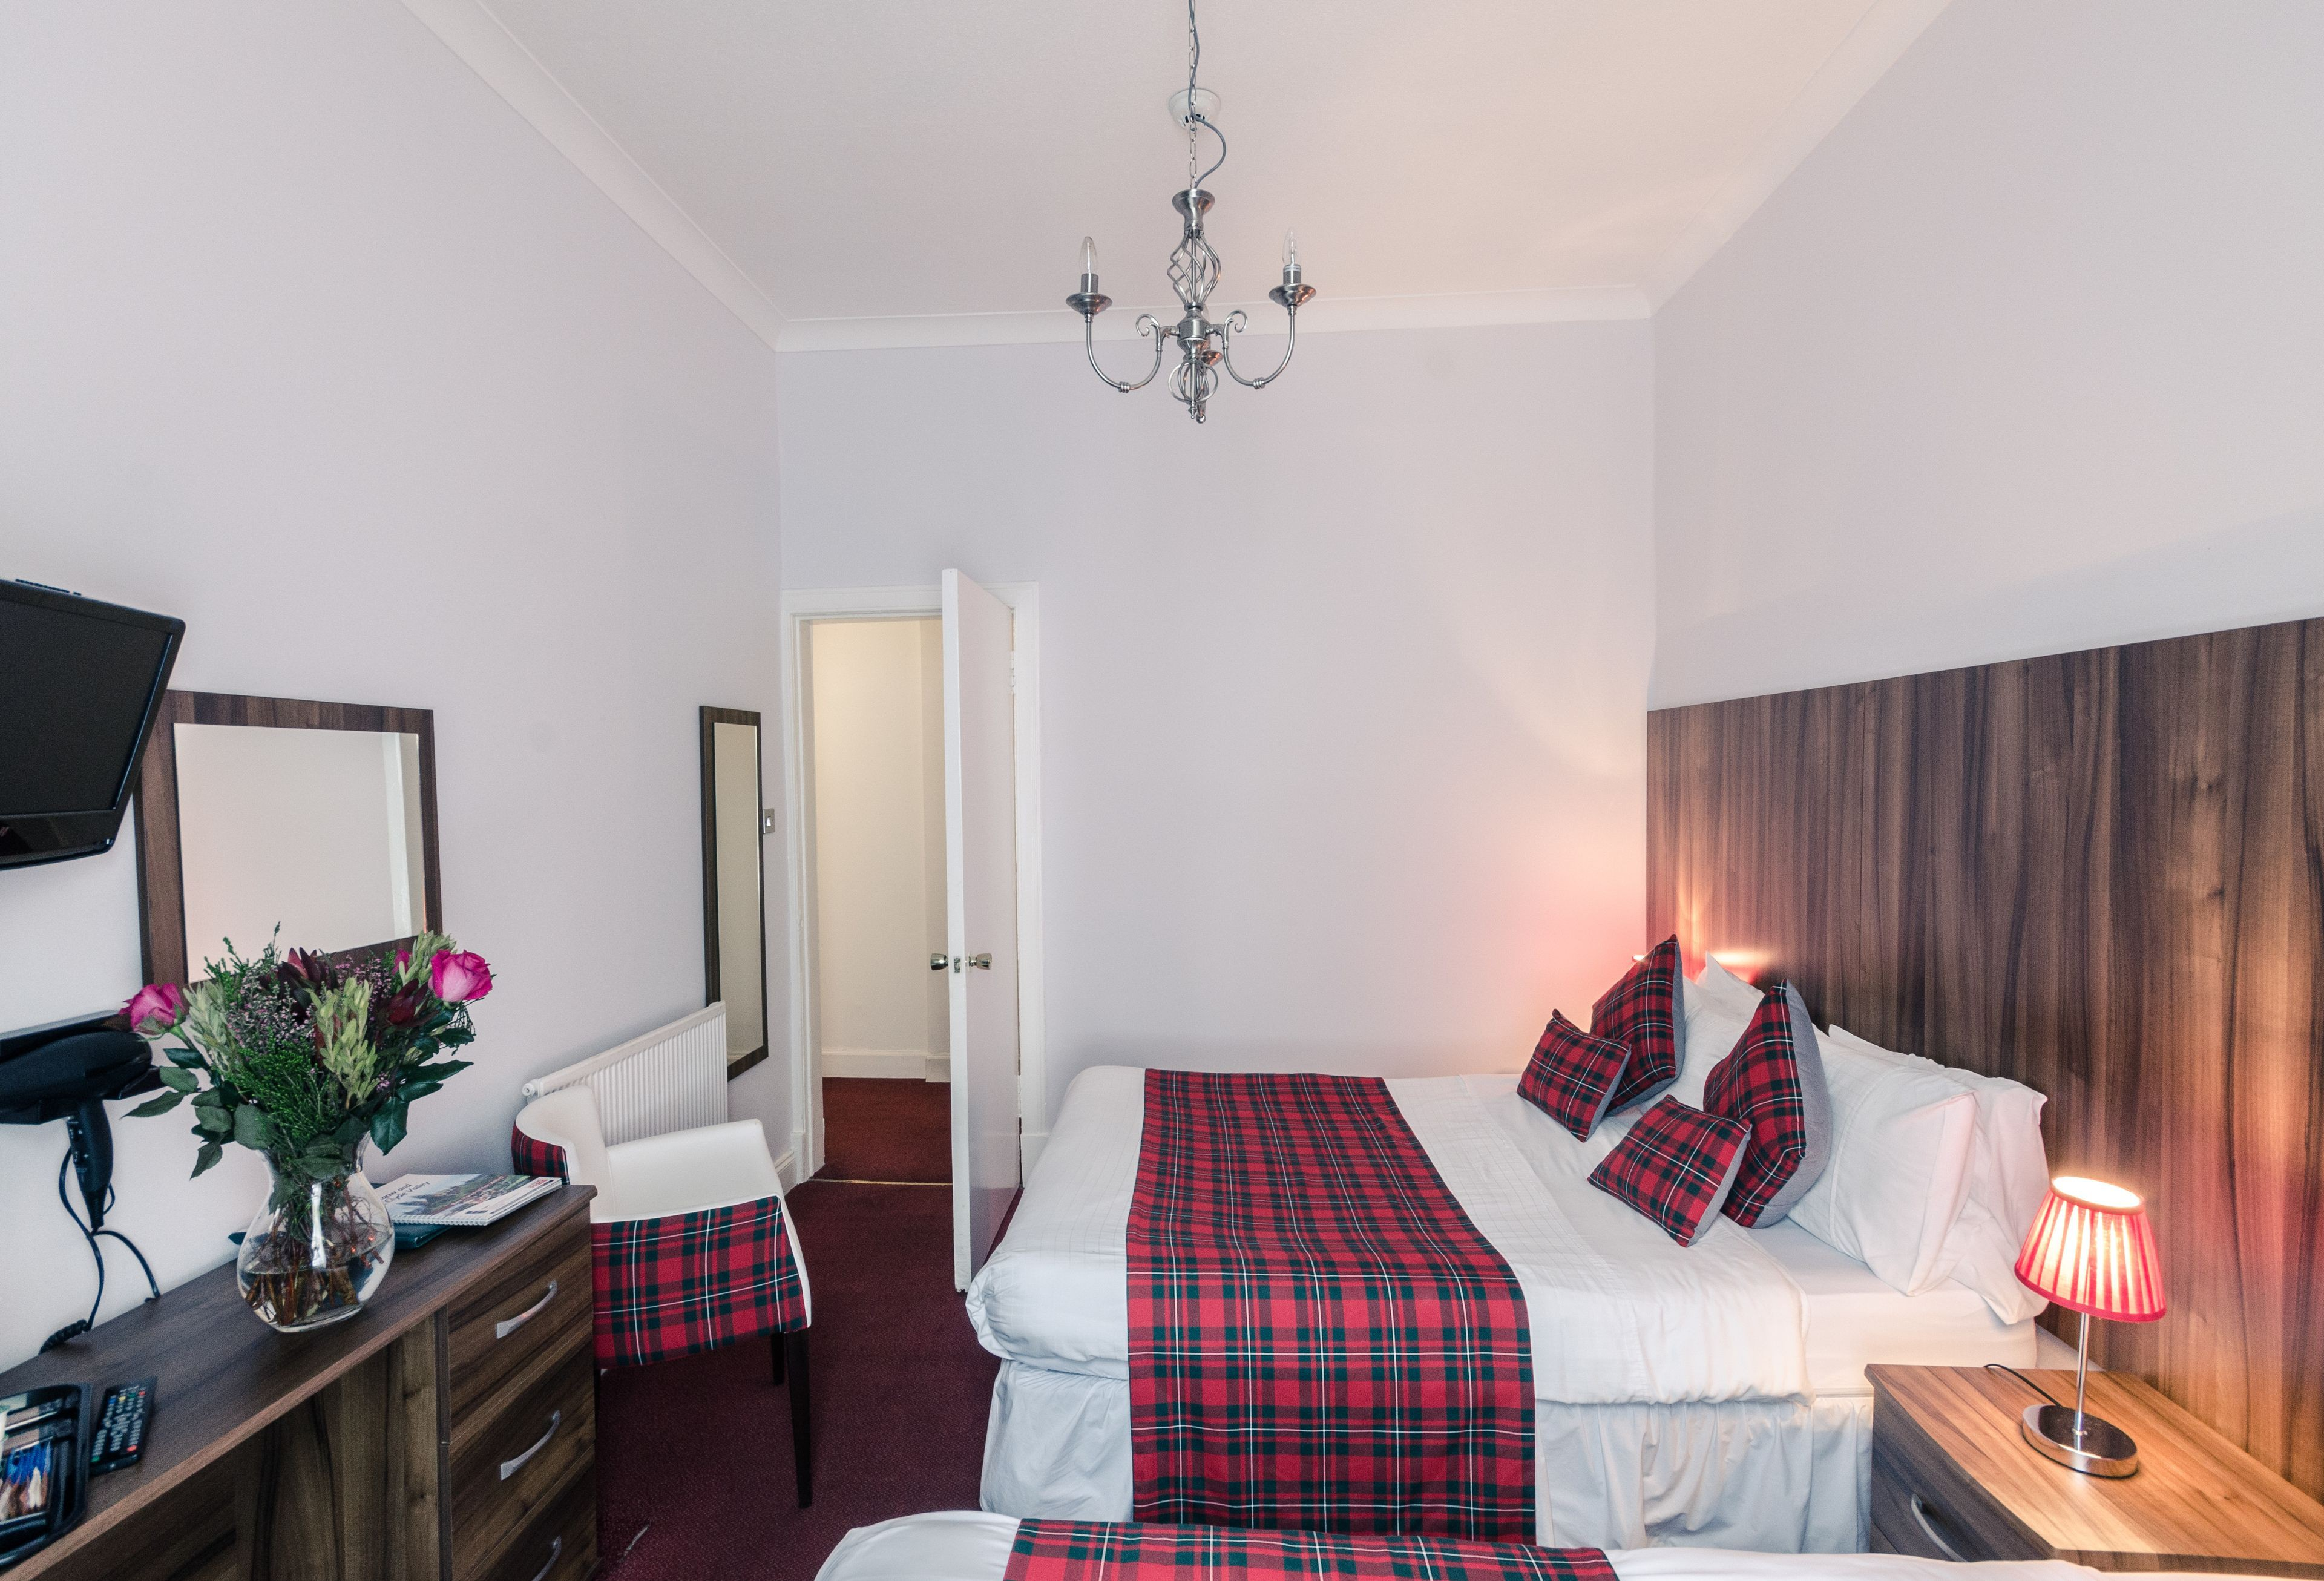 Courtesy of Argyll Guest House / Expedia